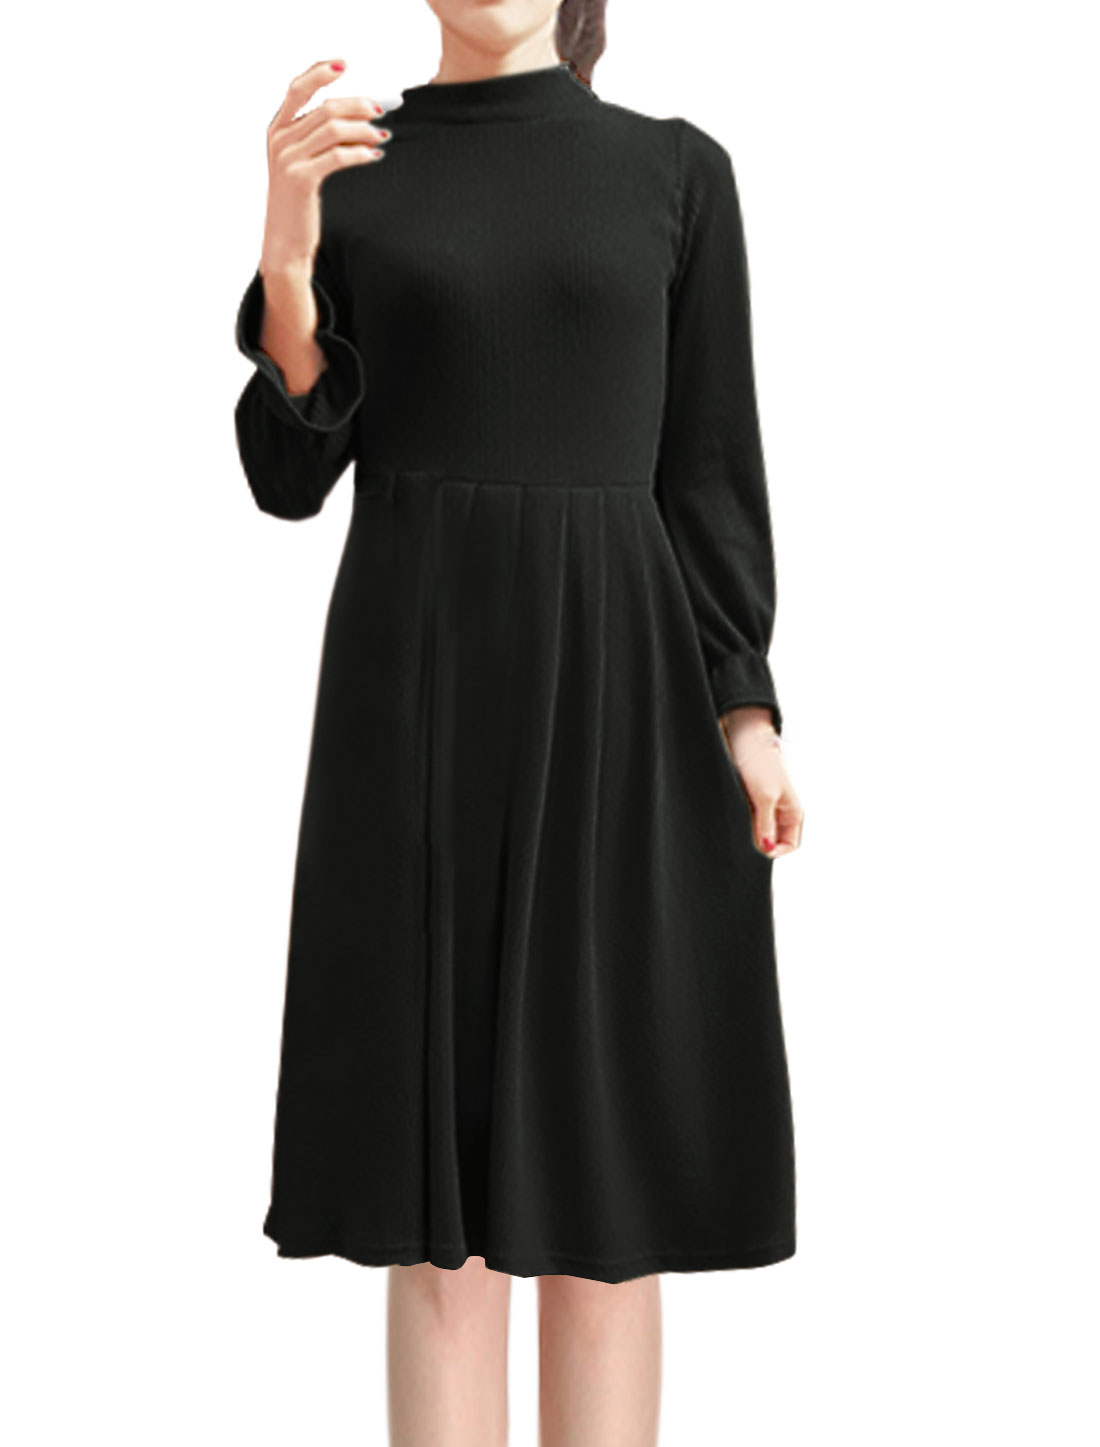 Women Mock Neck Ruffled Sleeves Ribbed Midi Pleated Dress Black XS